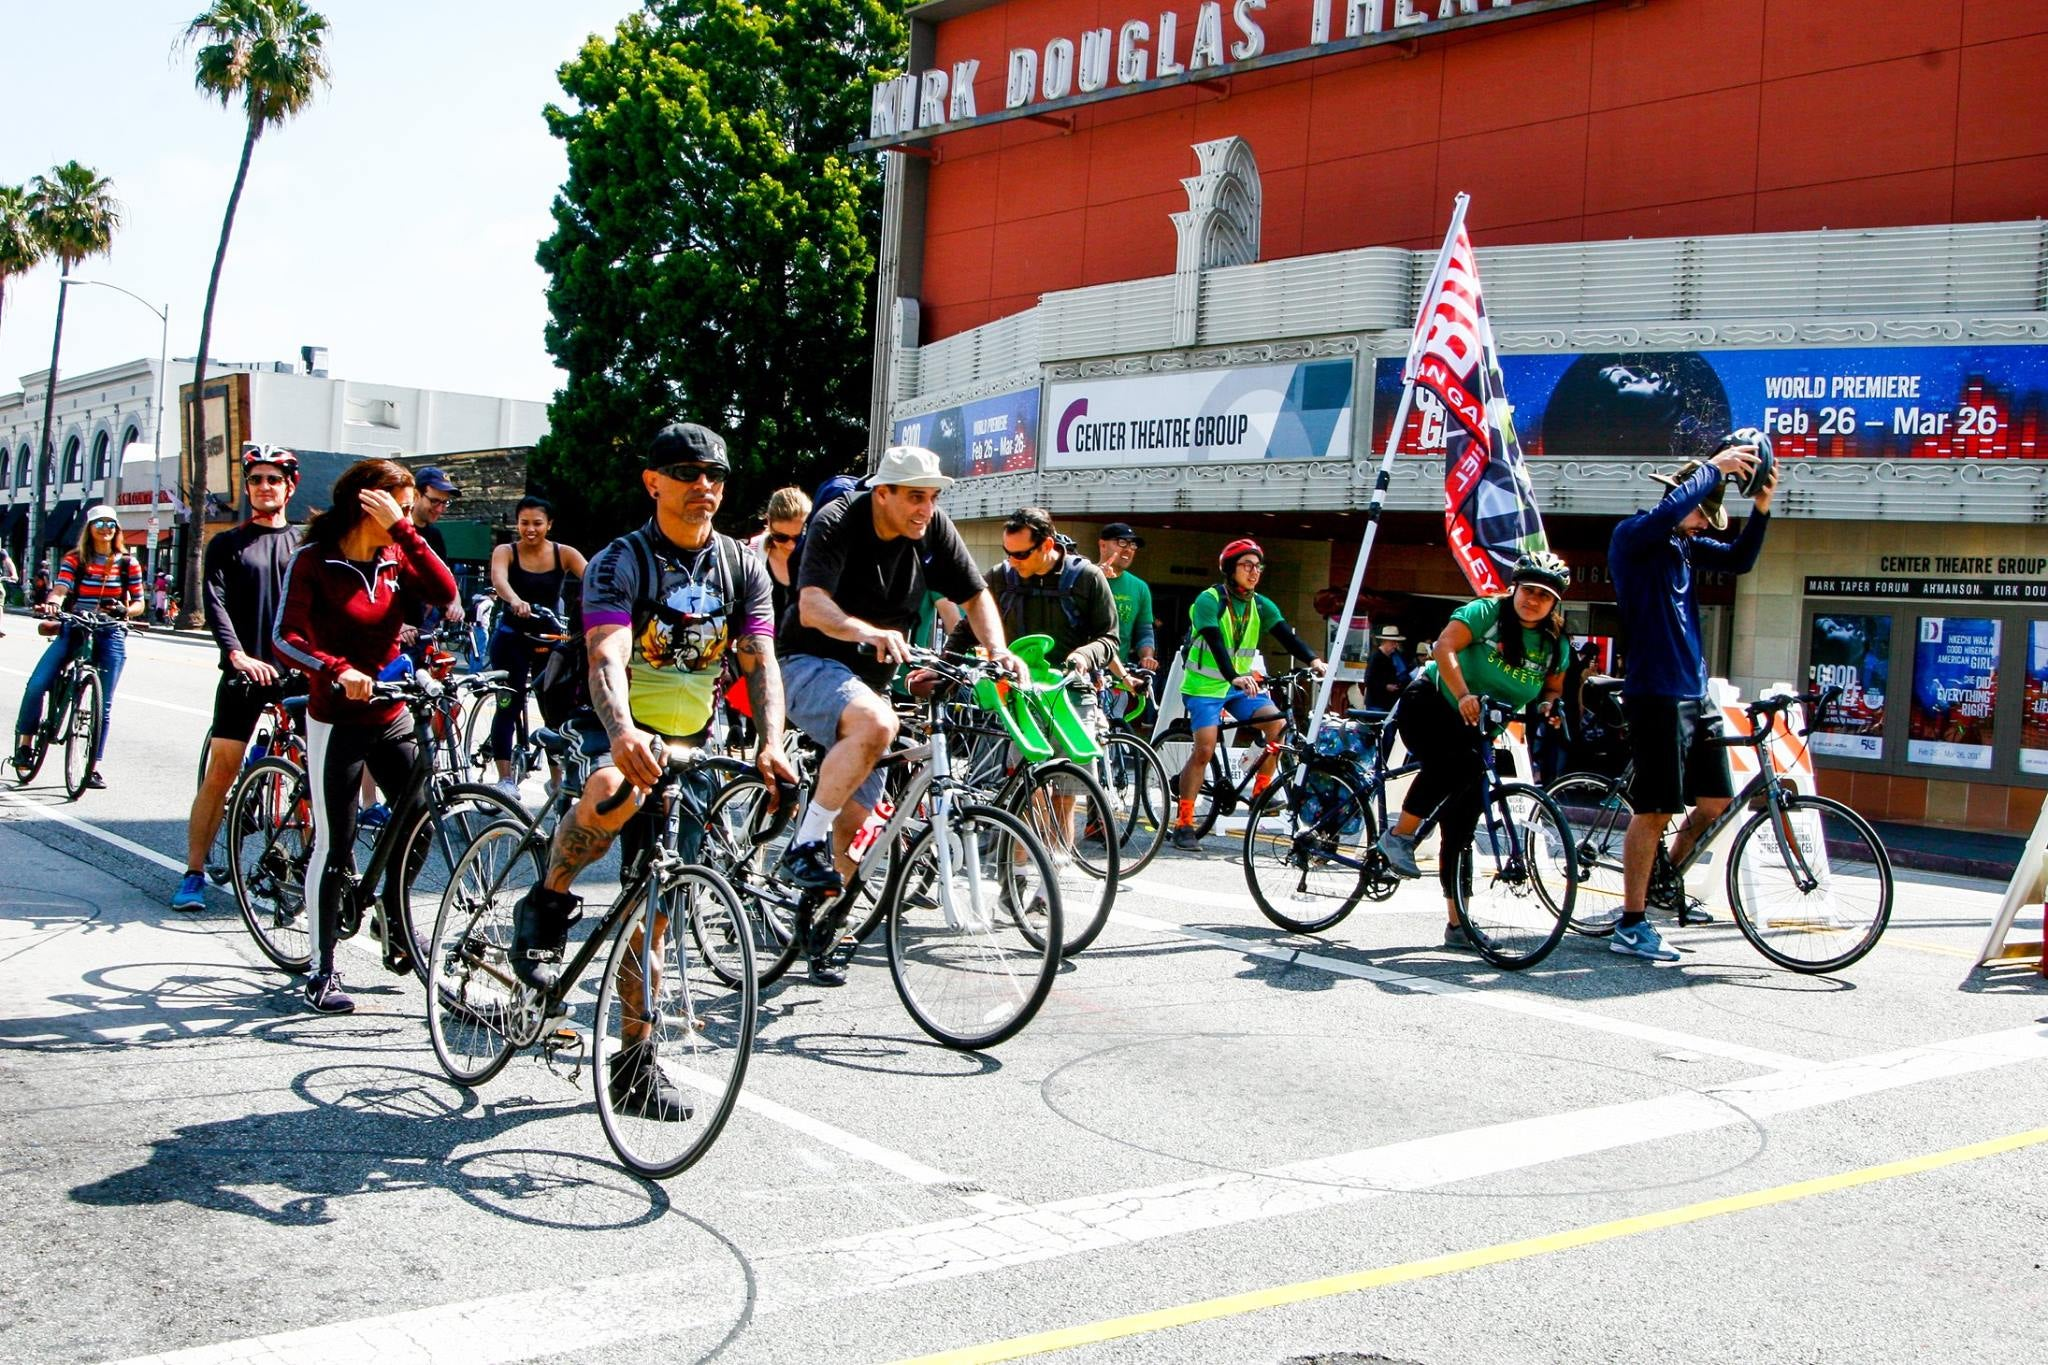 CicLAvia at the Kirk Douglas Theatre in Culver City